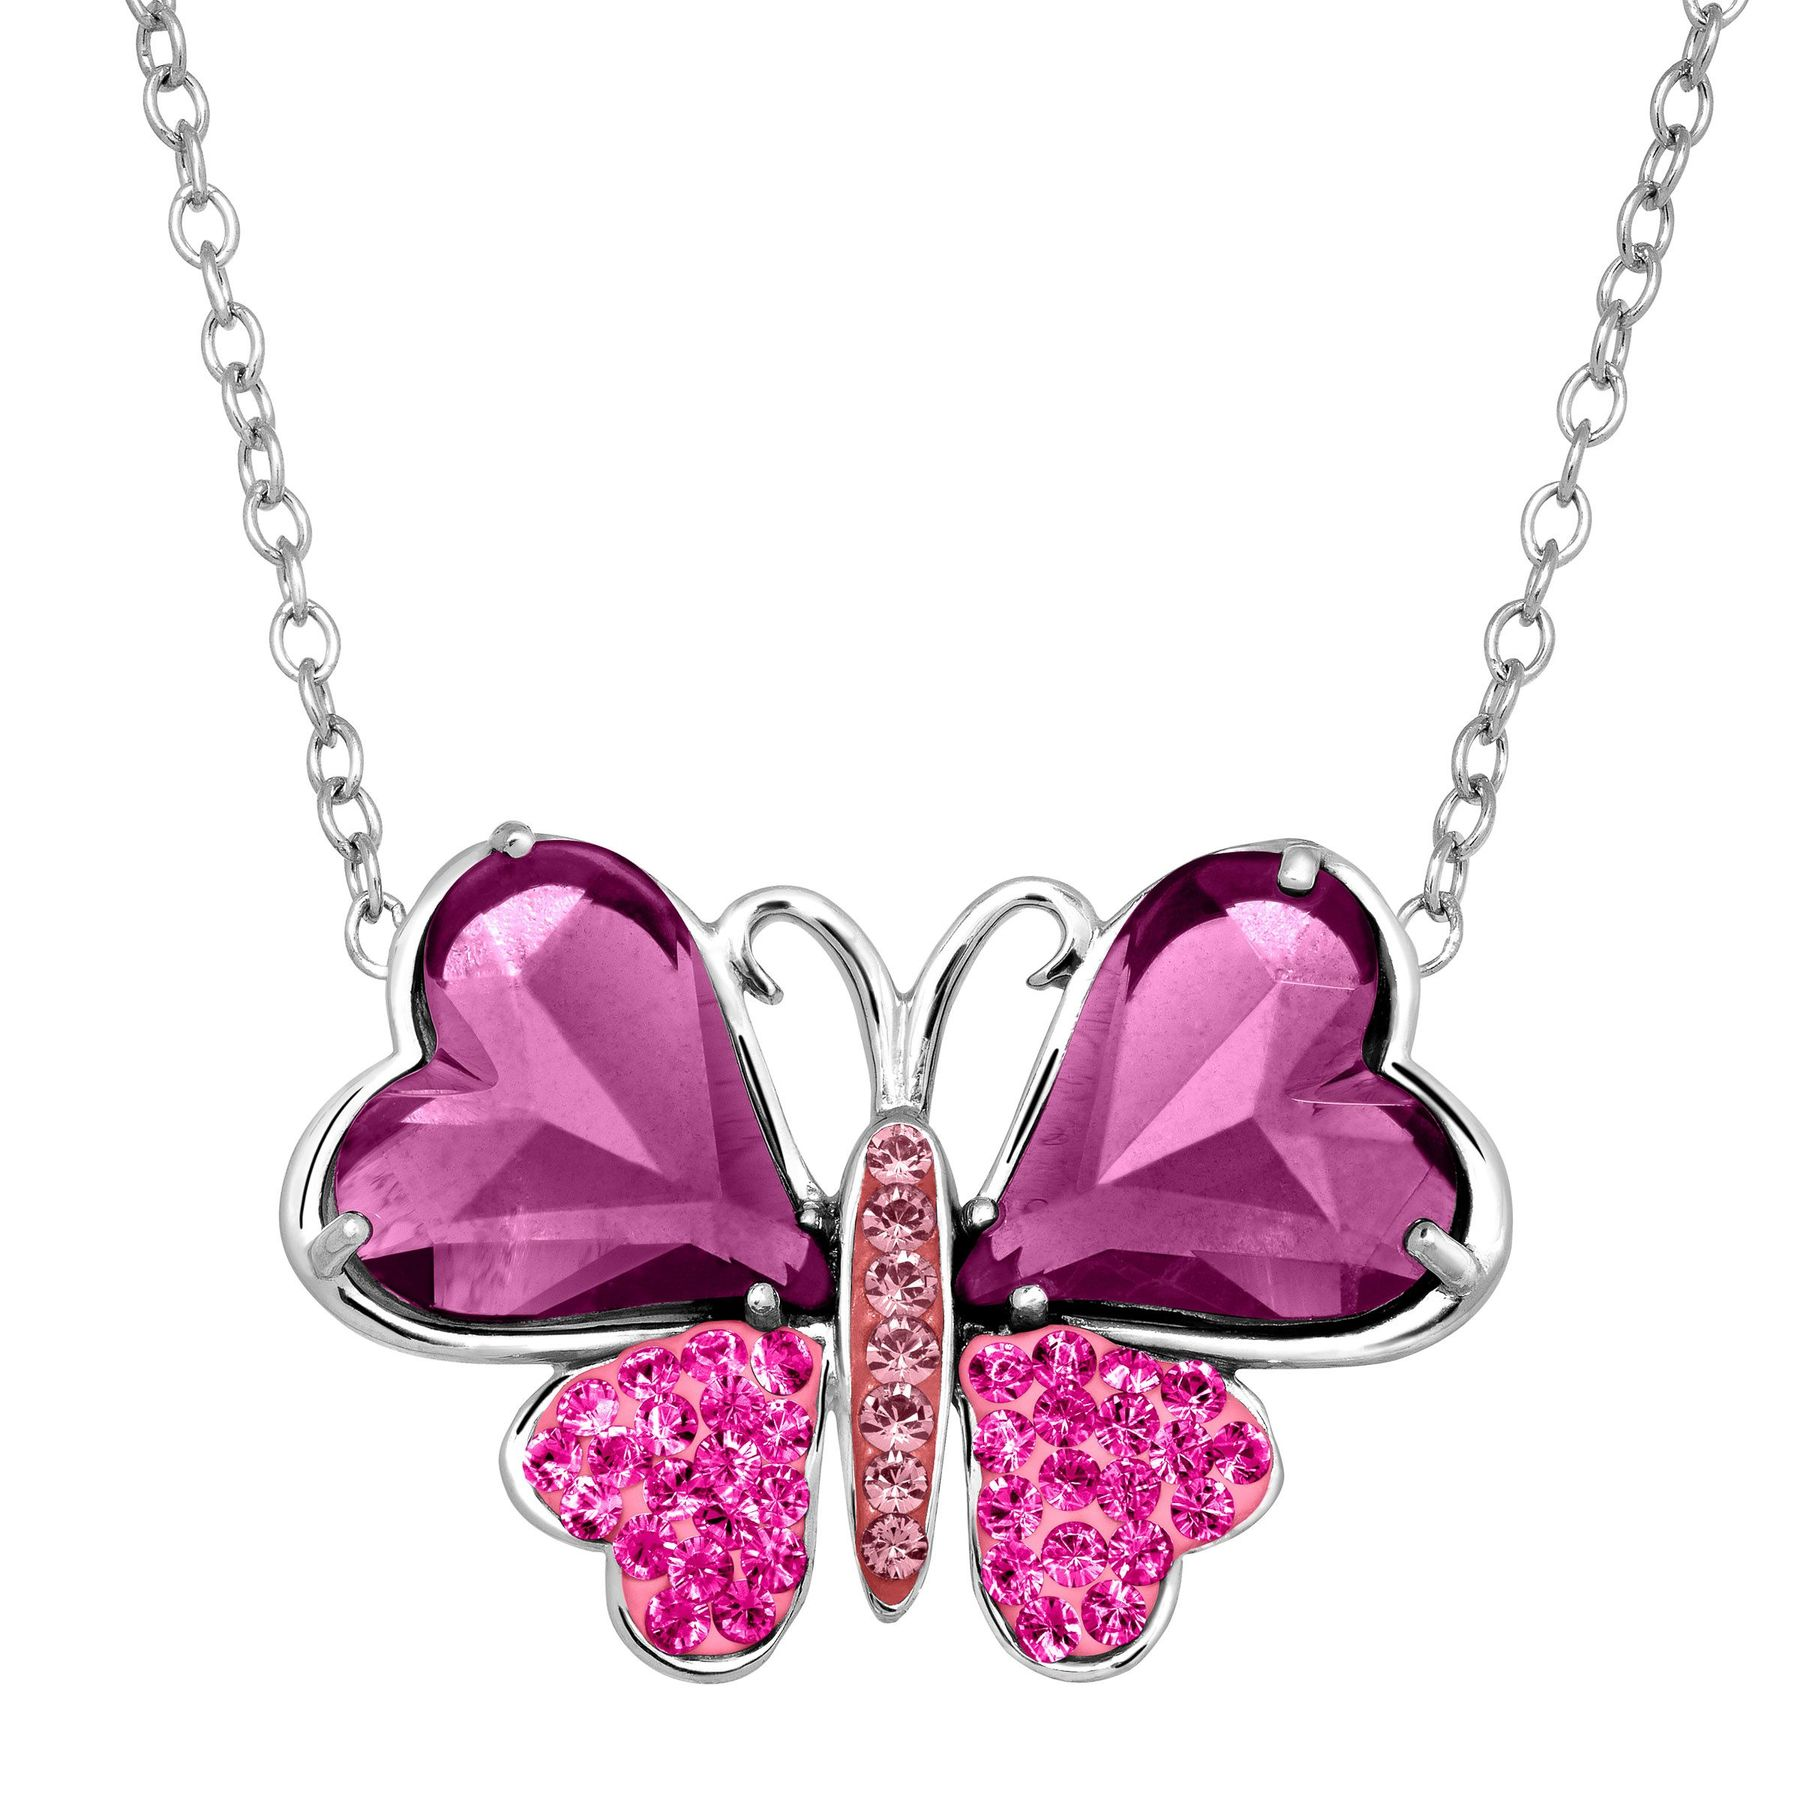 Crystaluxe Two-Tone Butterfly Necklace w/ Swarovski Crystals (Sterling Silver)